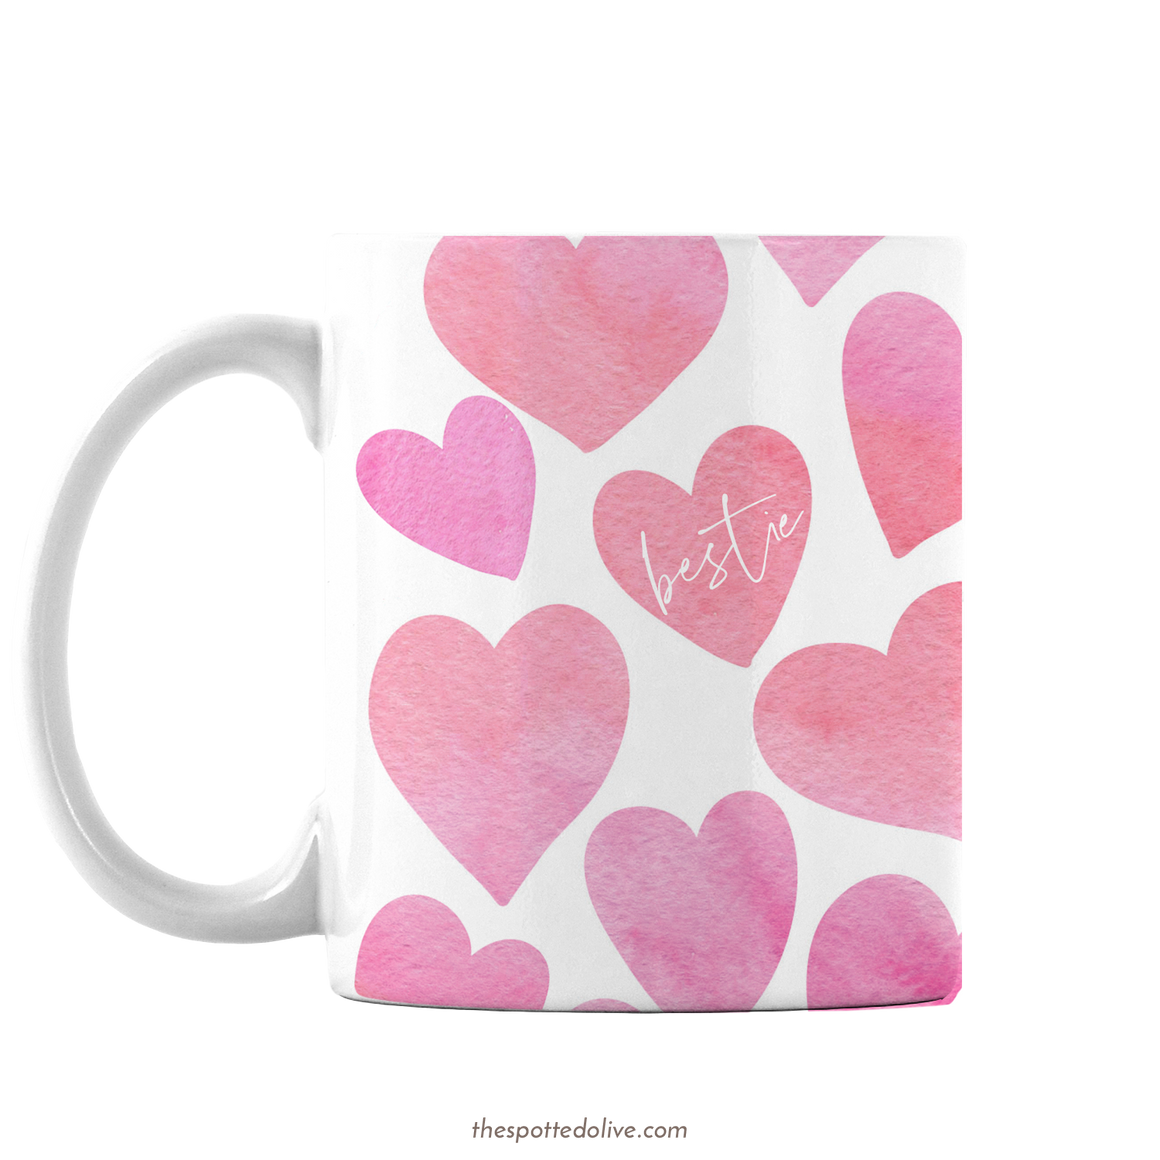 Happy Hearts Bestie Mug by The Spotted Olive - Left